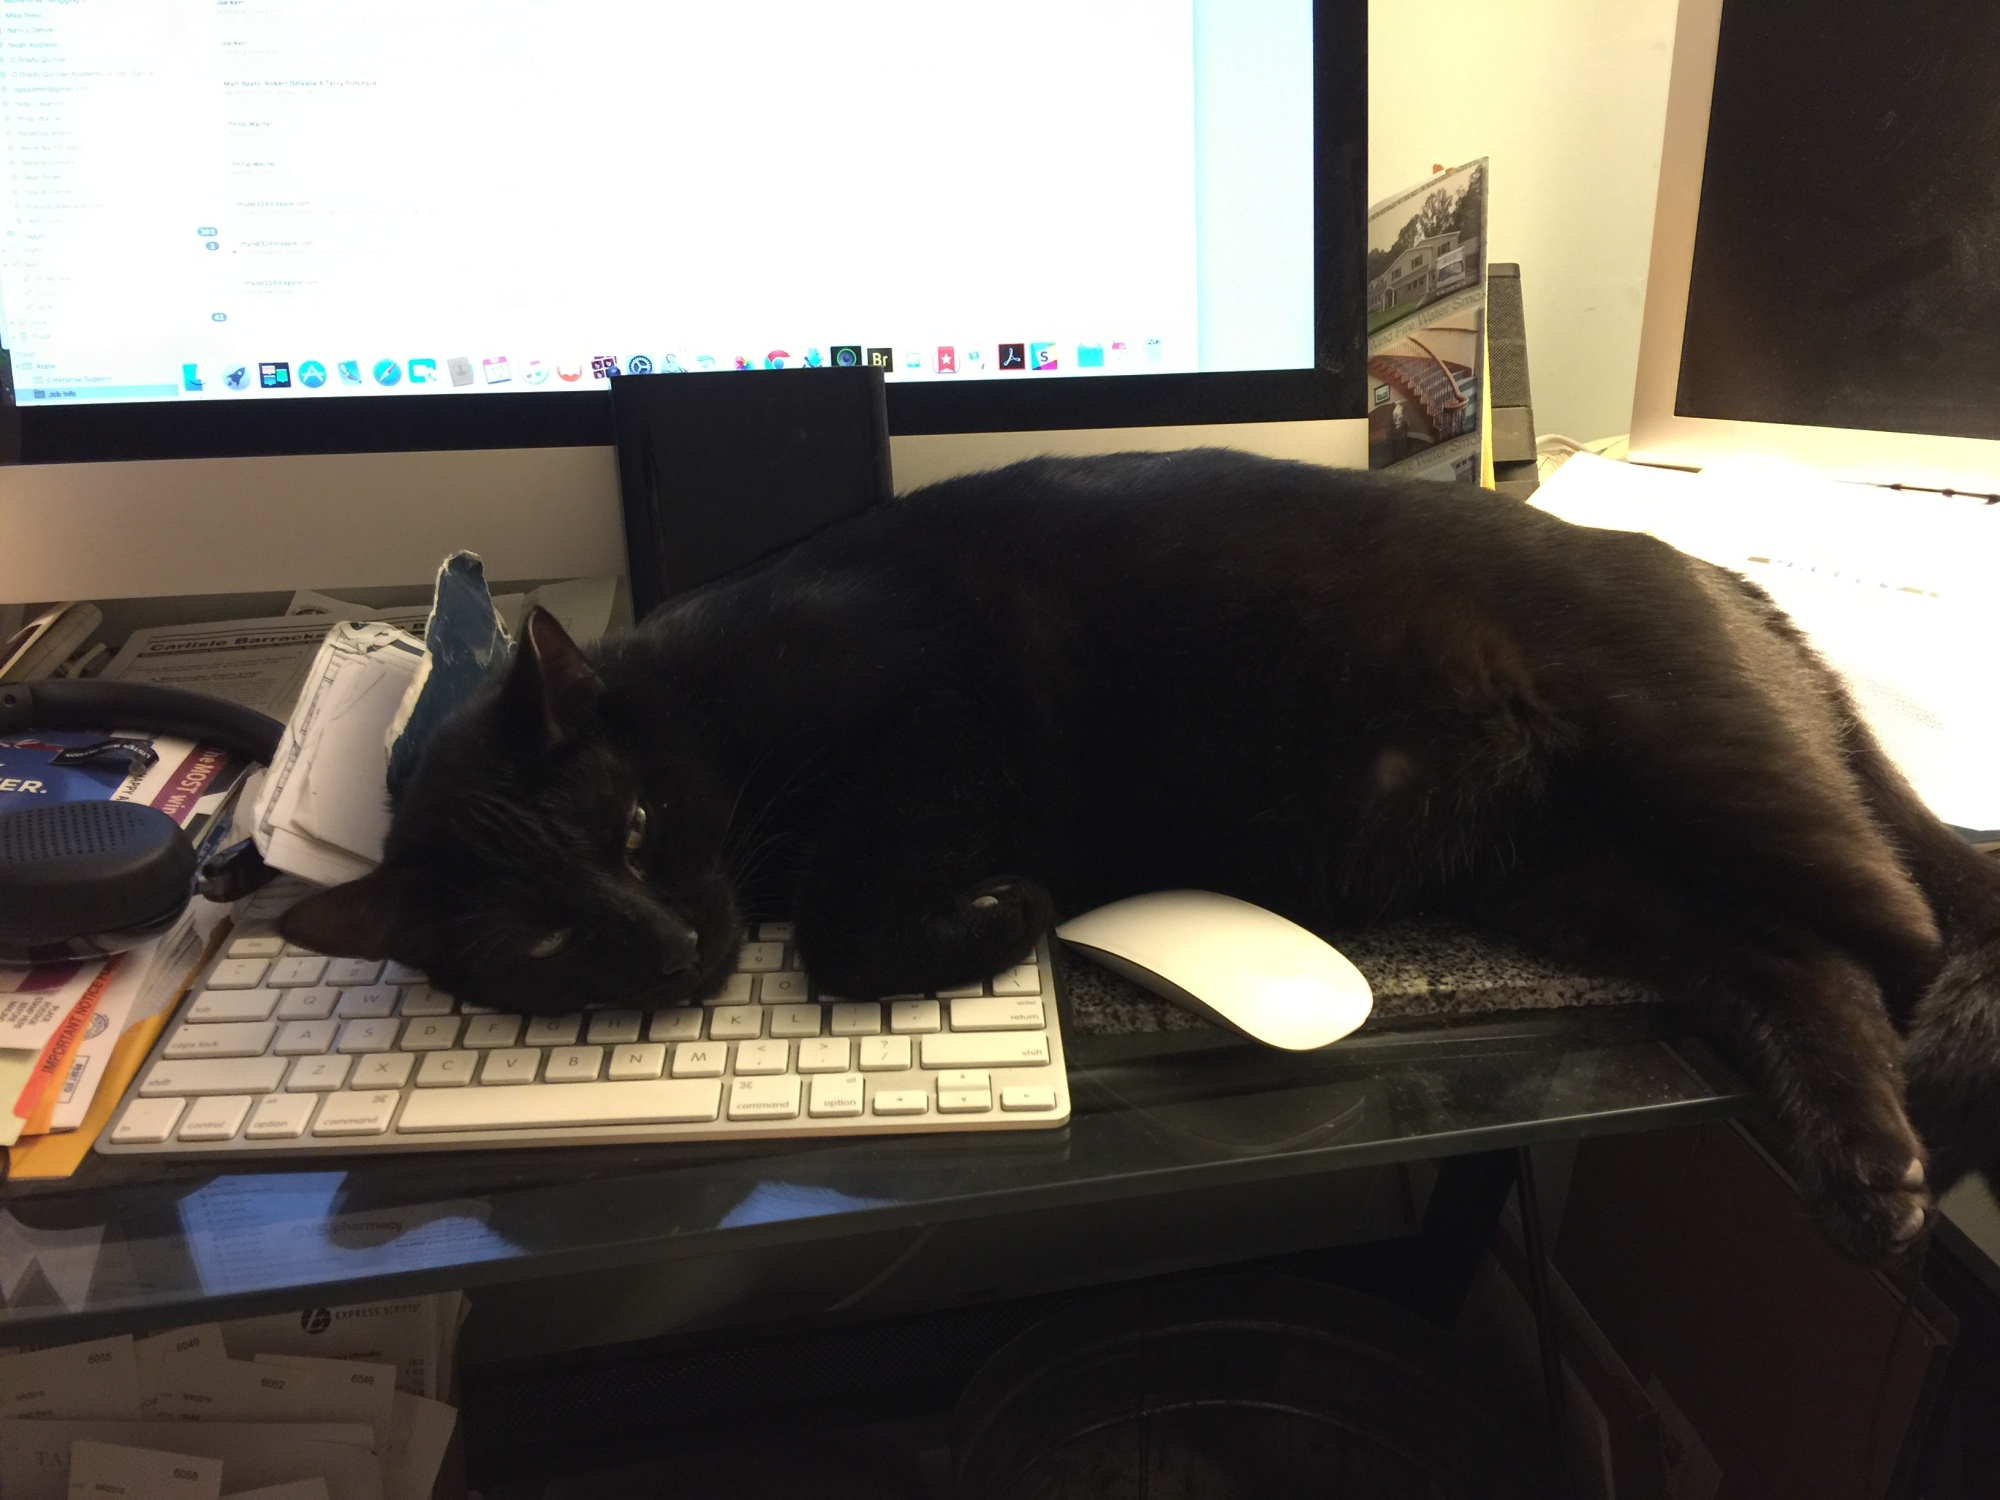 Jet, a black cat, lying on a keyboard